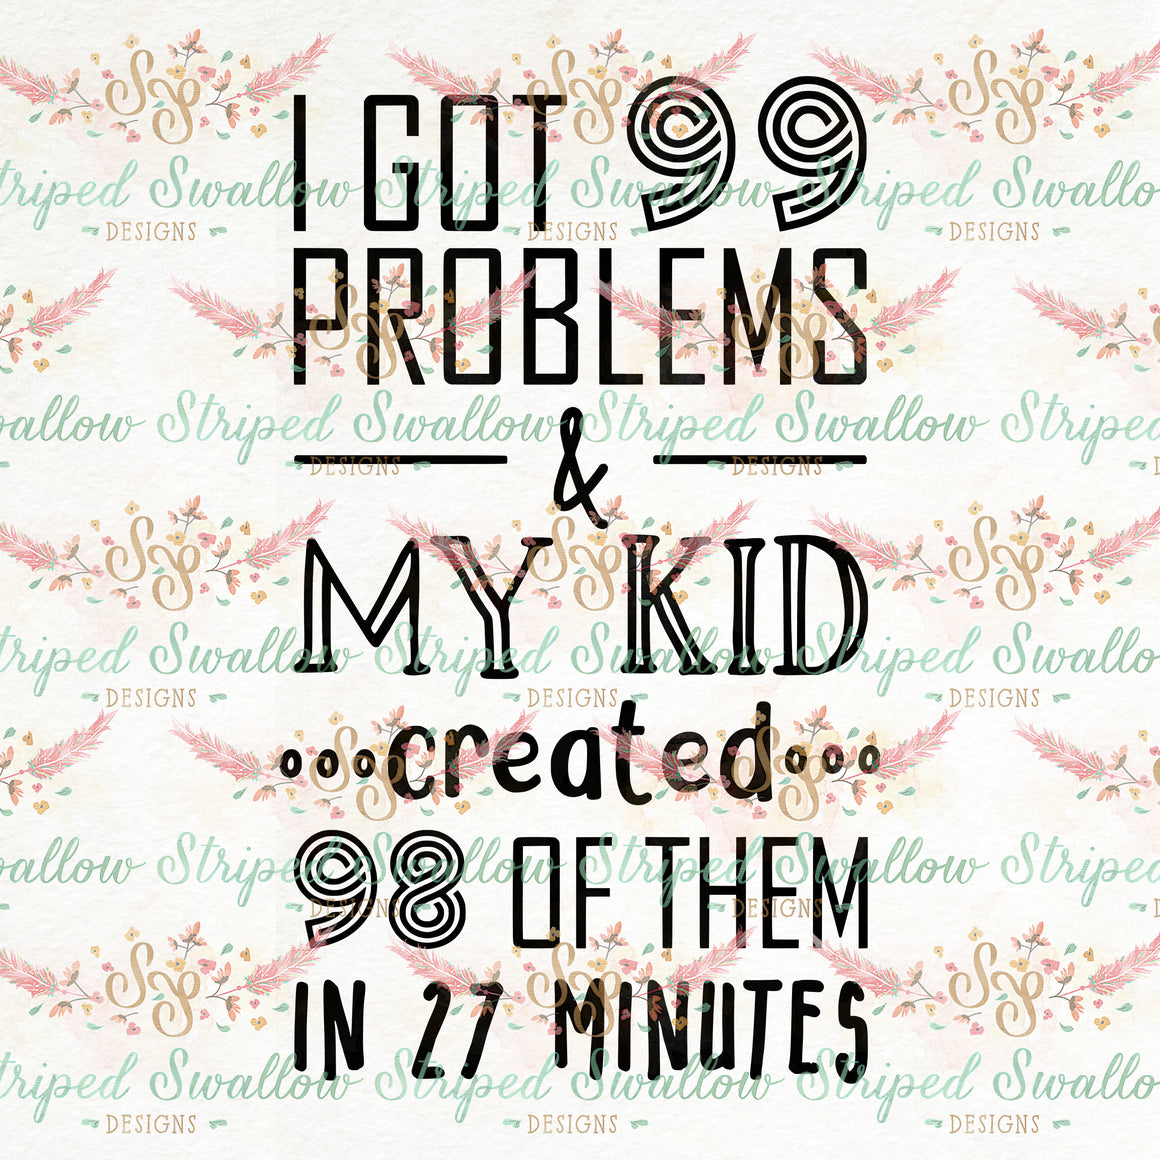 99 Problems Digital Cut File